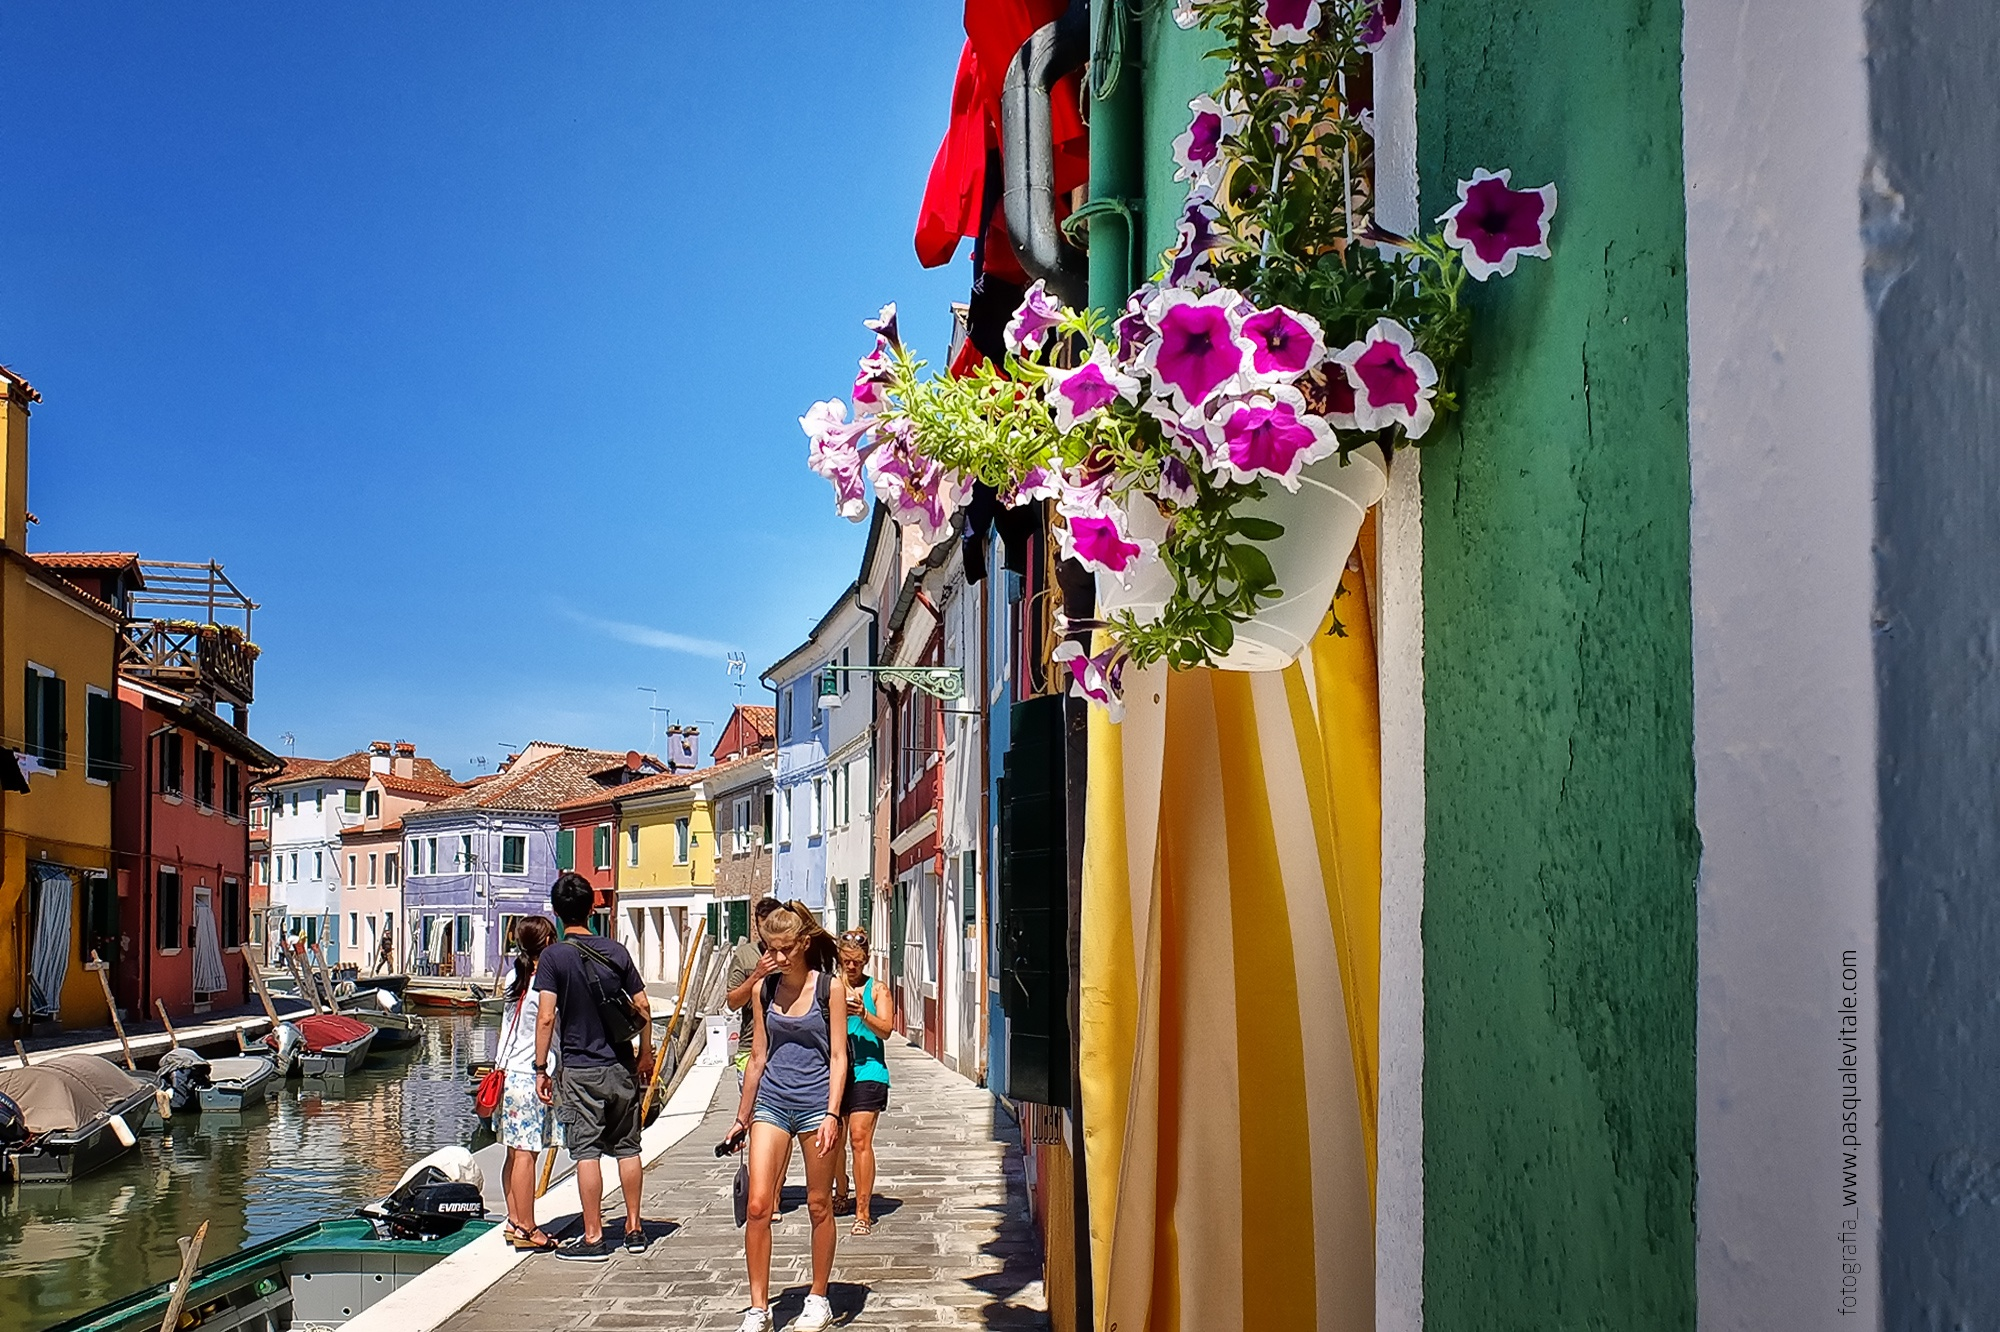 Burano by Pasquale Vitale